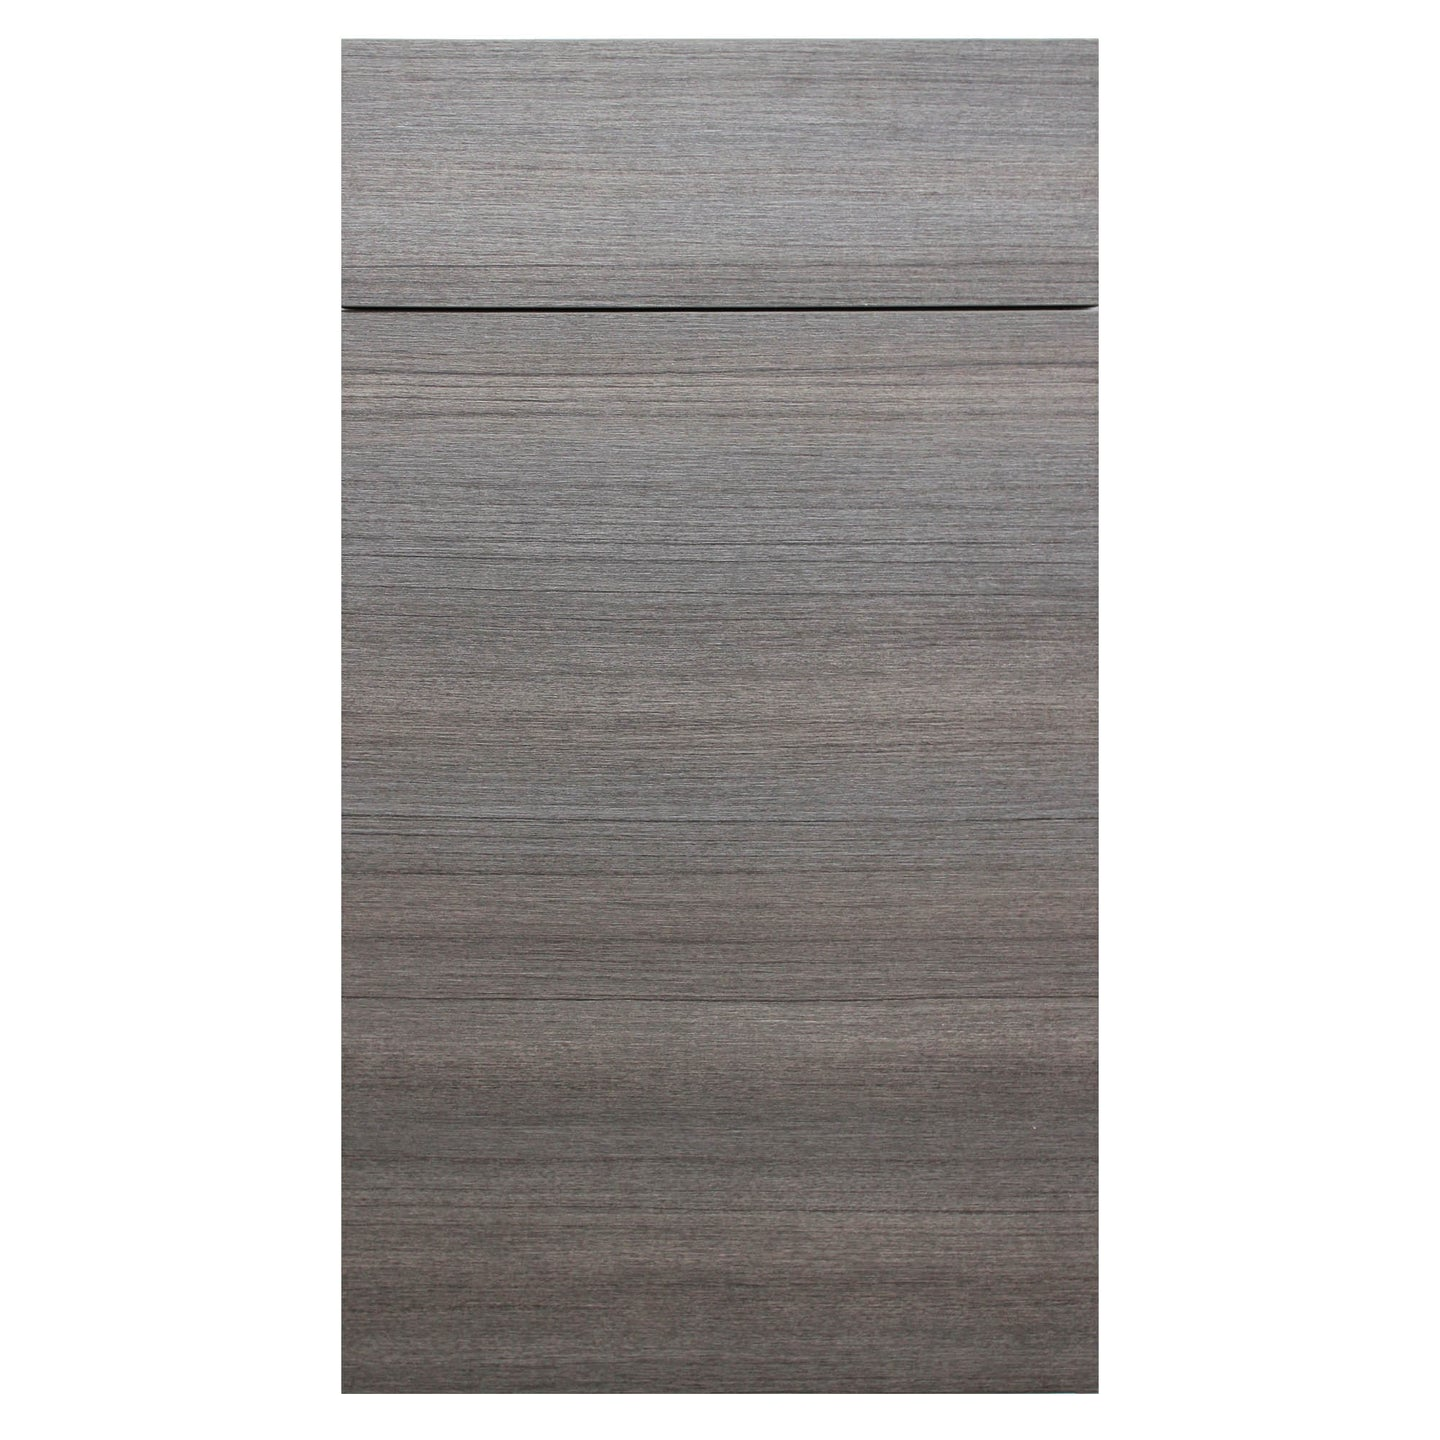 Driftwood Italian Laminate - Grigio - Quality Kitchens For Less